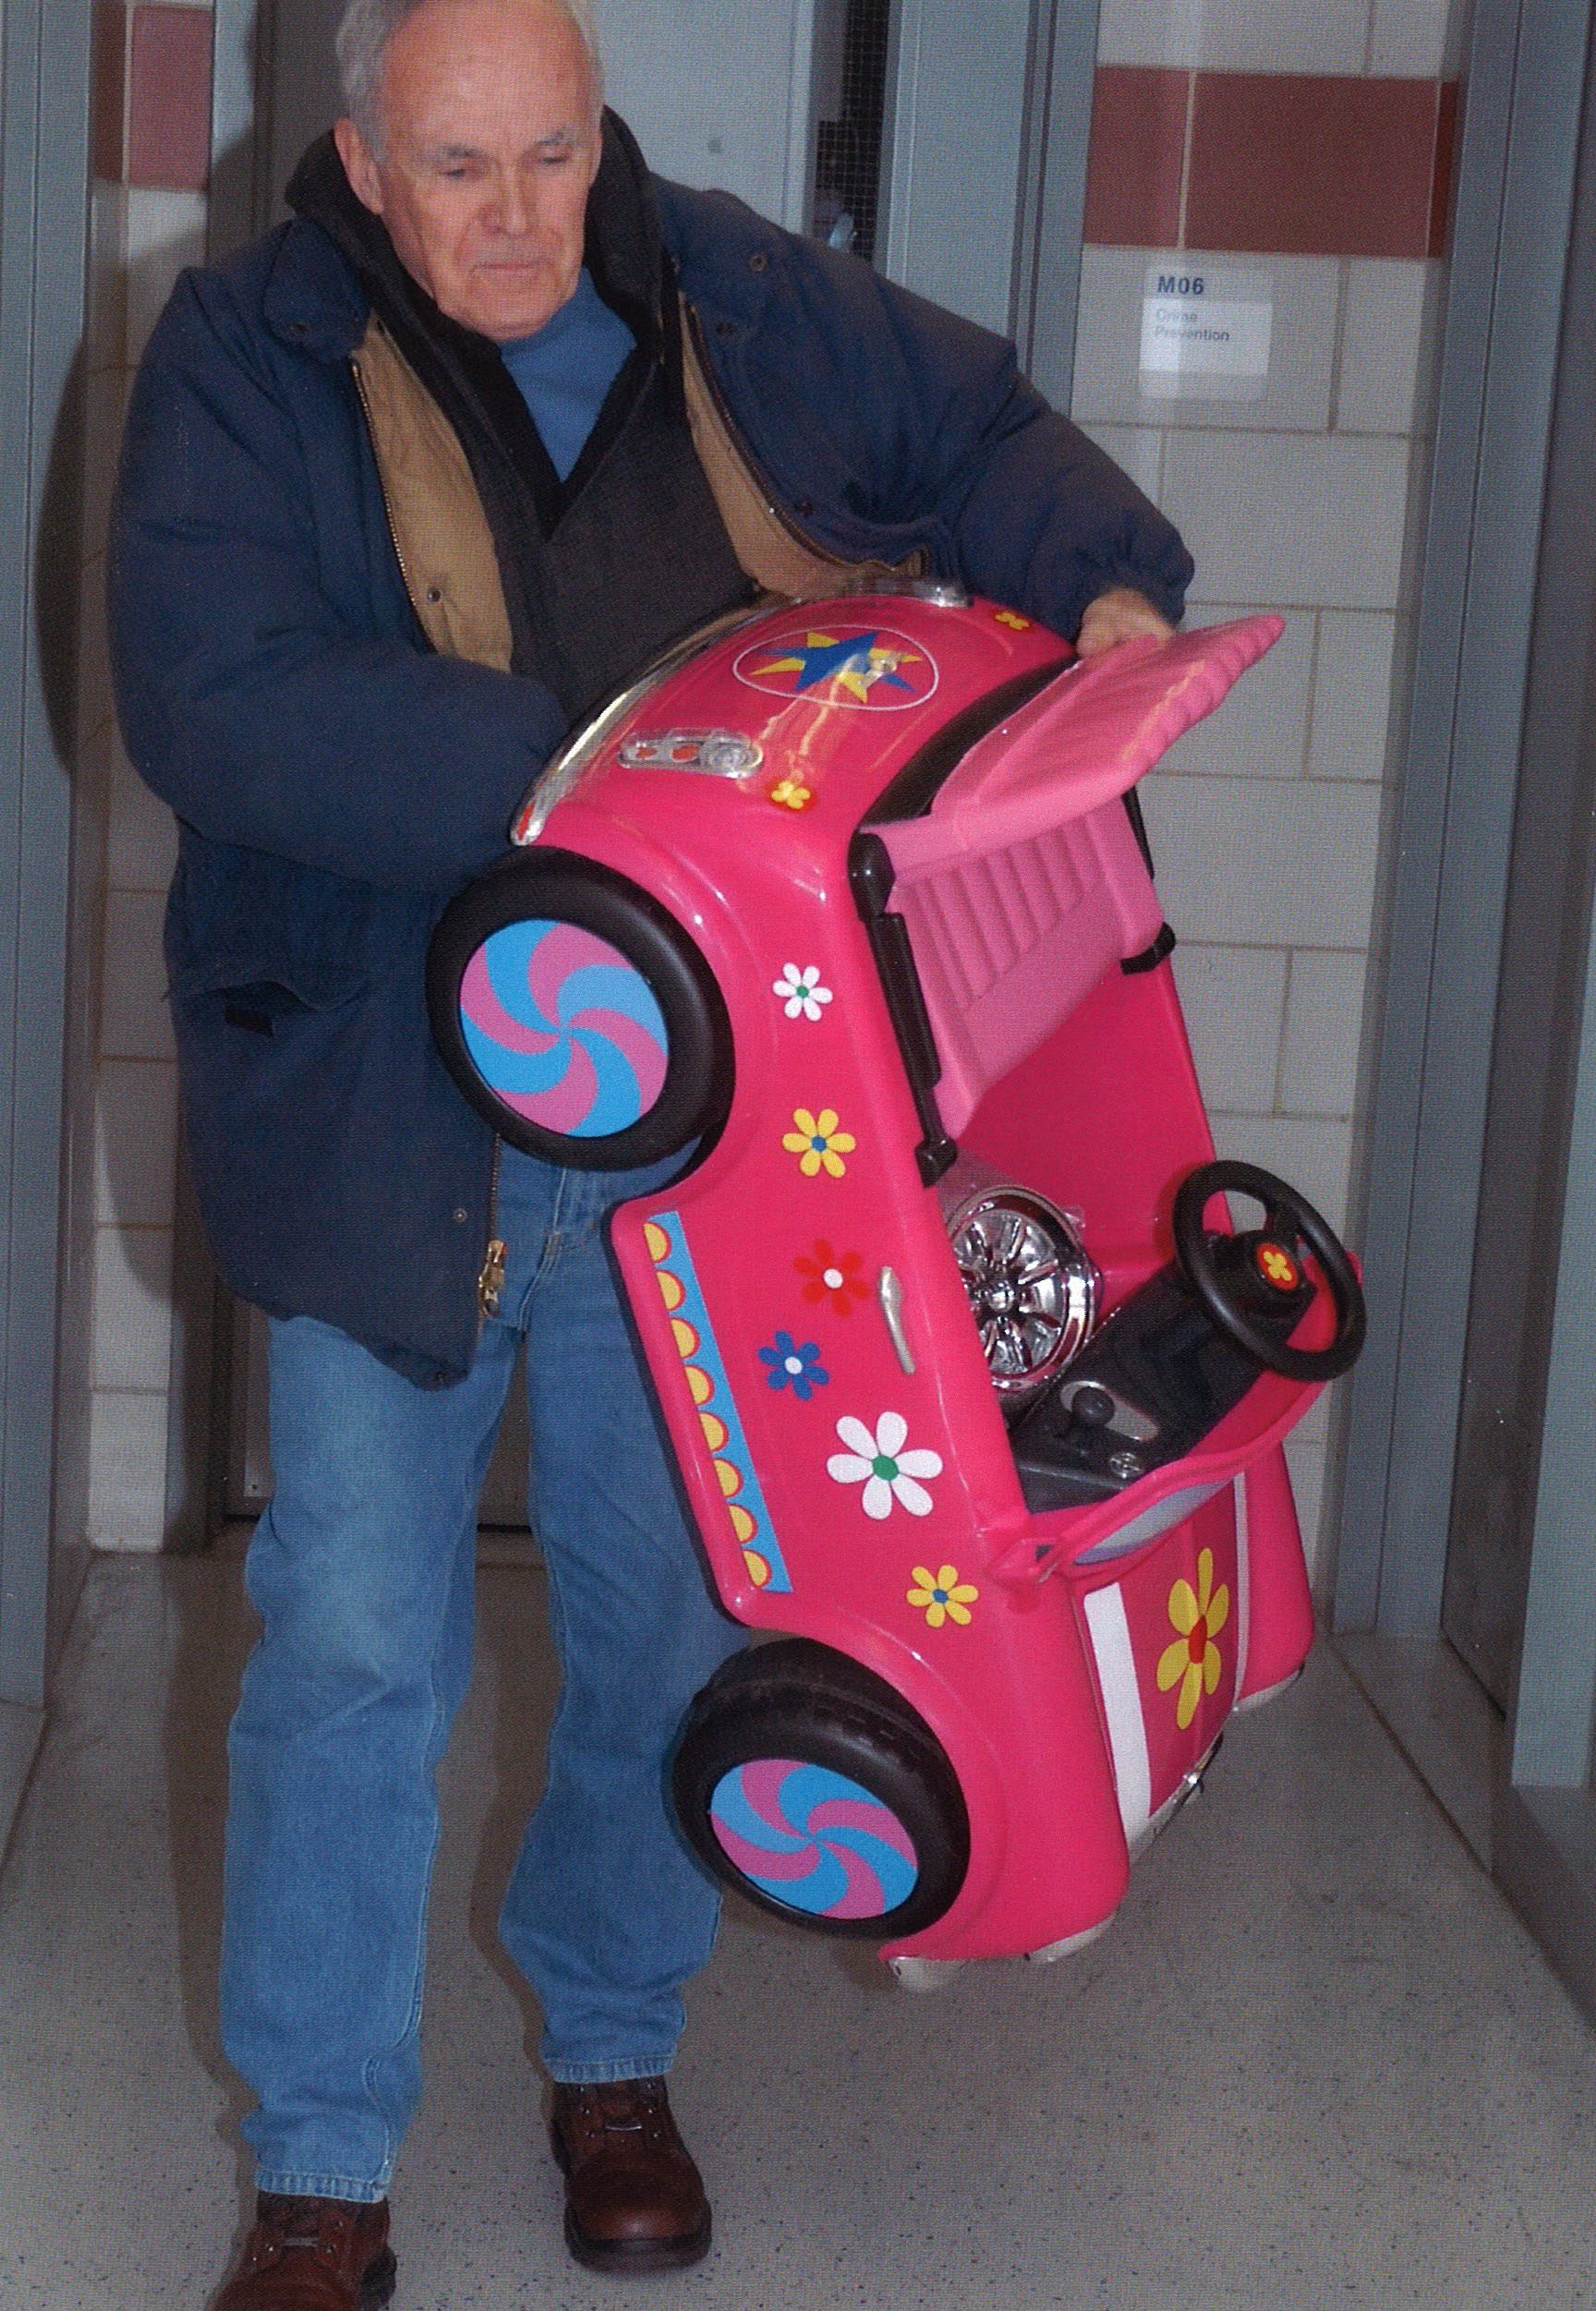 As head of  the 9th Precinct Community Council for twenty years, Jeremiah Shea instituted many community-centered event. He is pictured here bringing in one of the many toys collected though the precinct's toy drive.